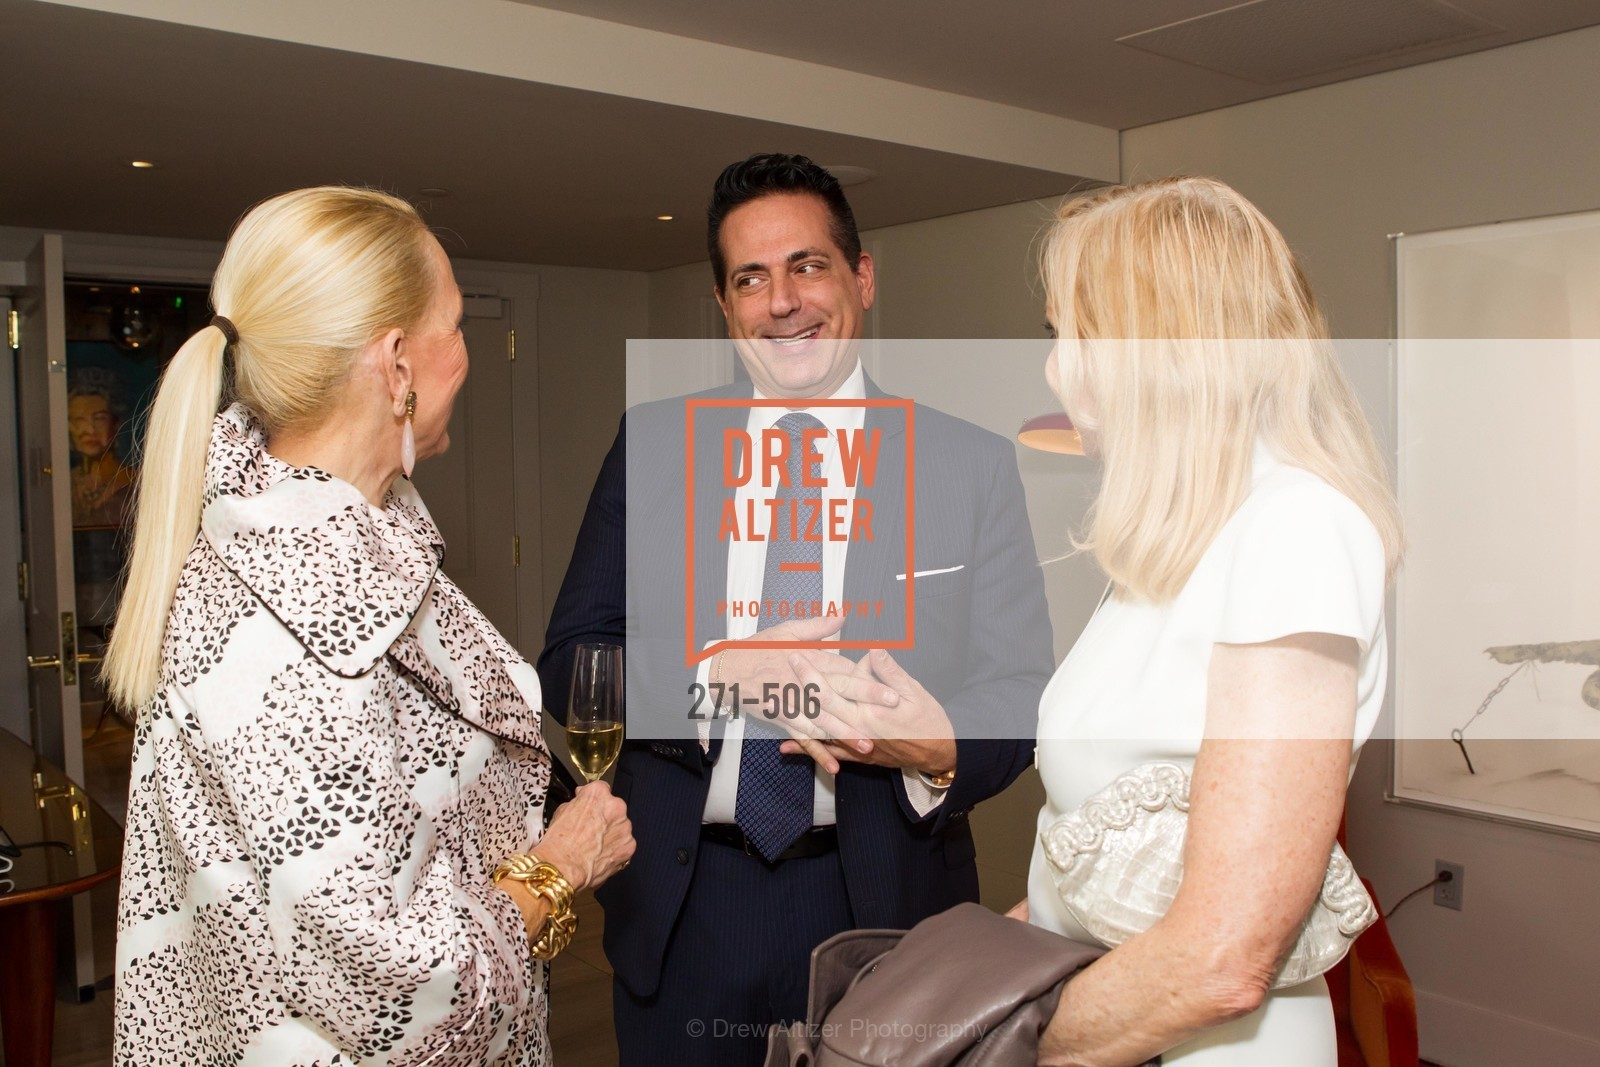 Adria Bini, Giovanni Mattera, Carole McNeil, 140408-grisogono-final, US. US, April 9th, 2014,Drew Altizer, Drew Altizer Photography, full-service event agency, private events, San Francisco photographer, photographer California